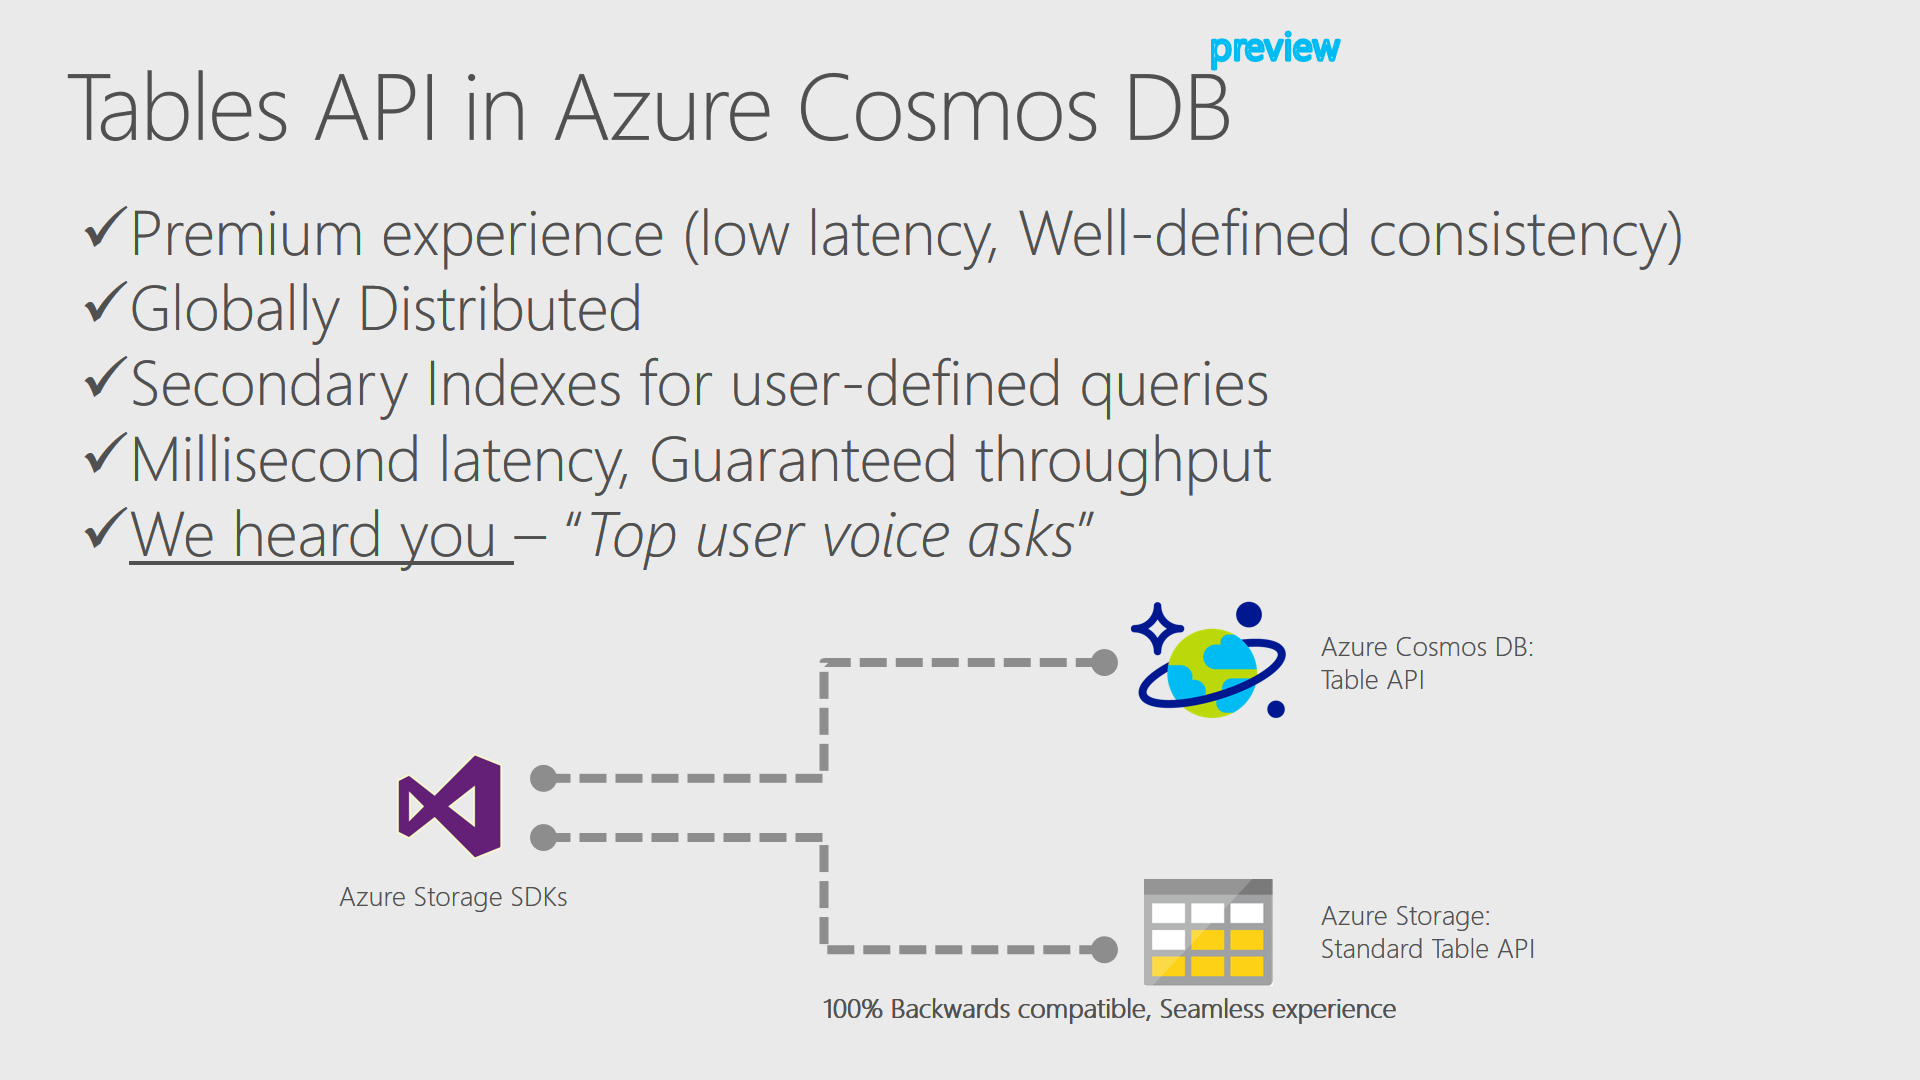 Table API in Azure Cosmos DB